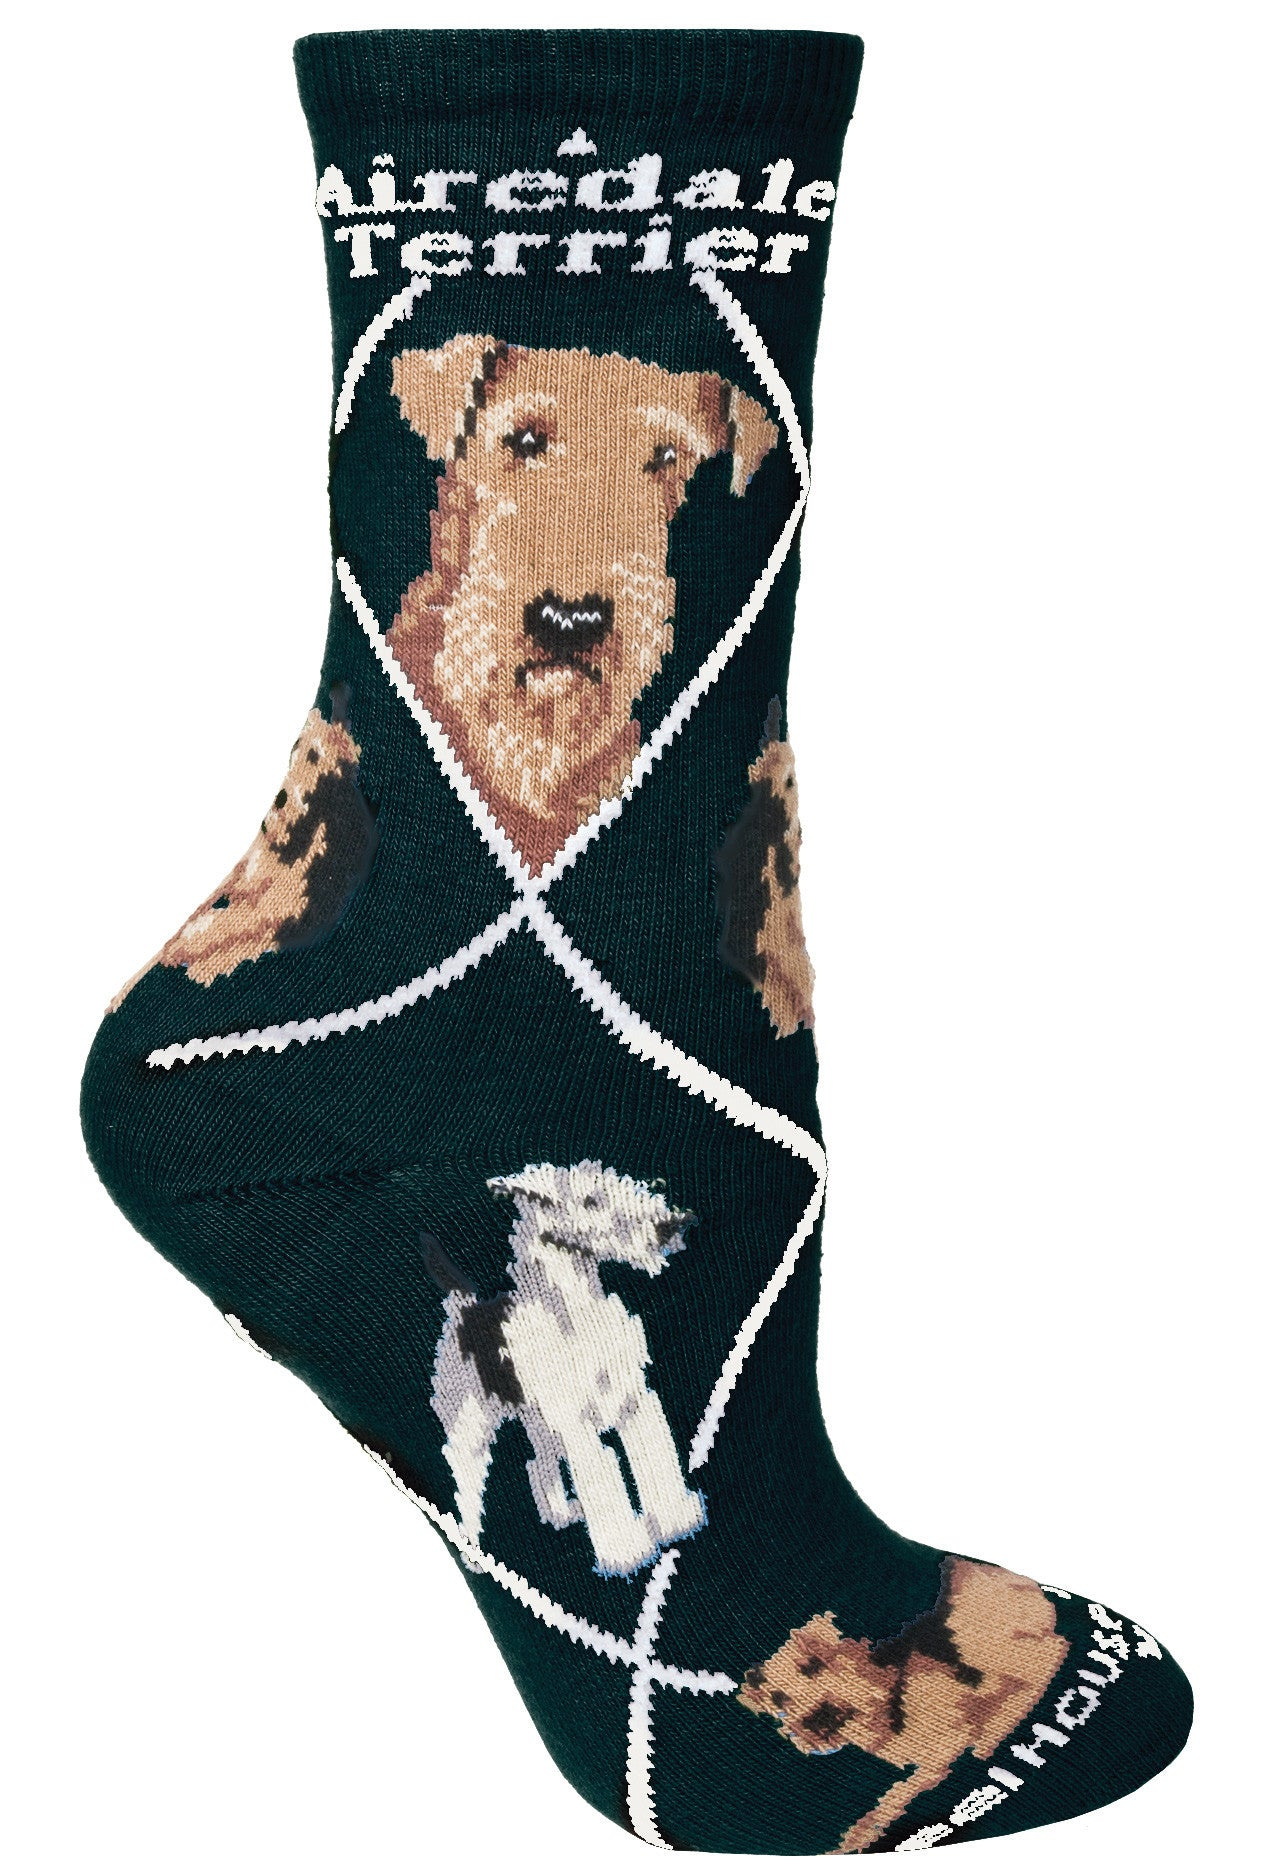 Airedale Terrier on Black Socks